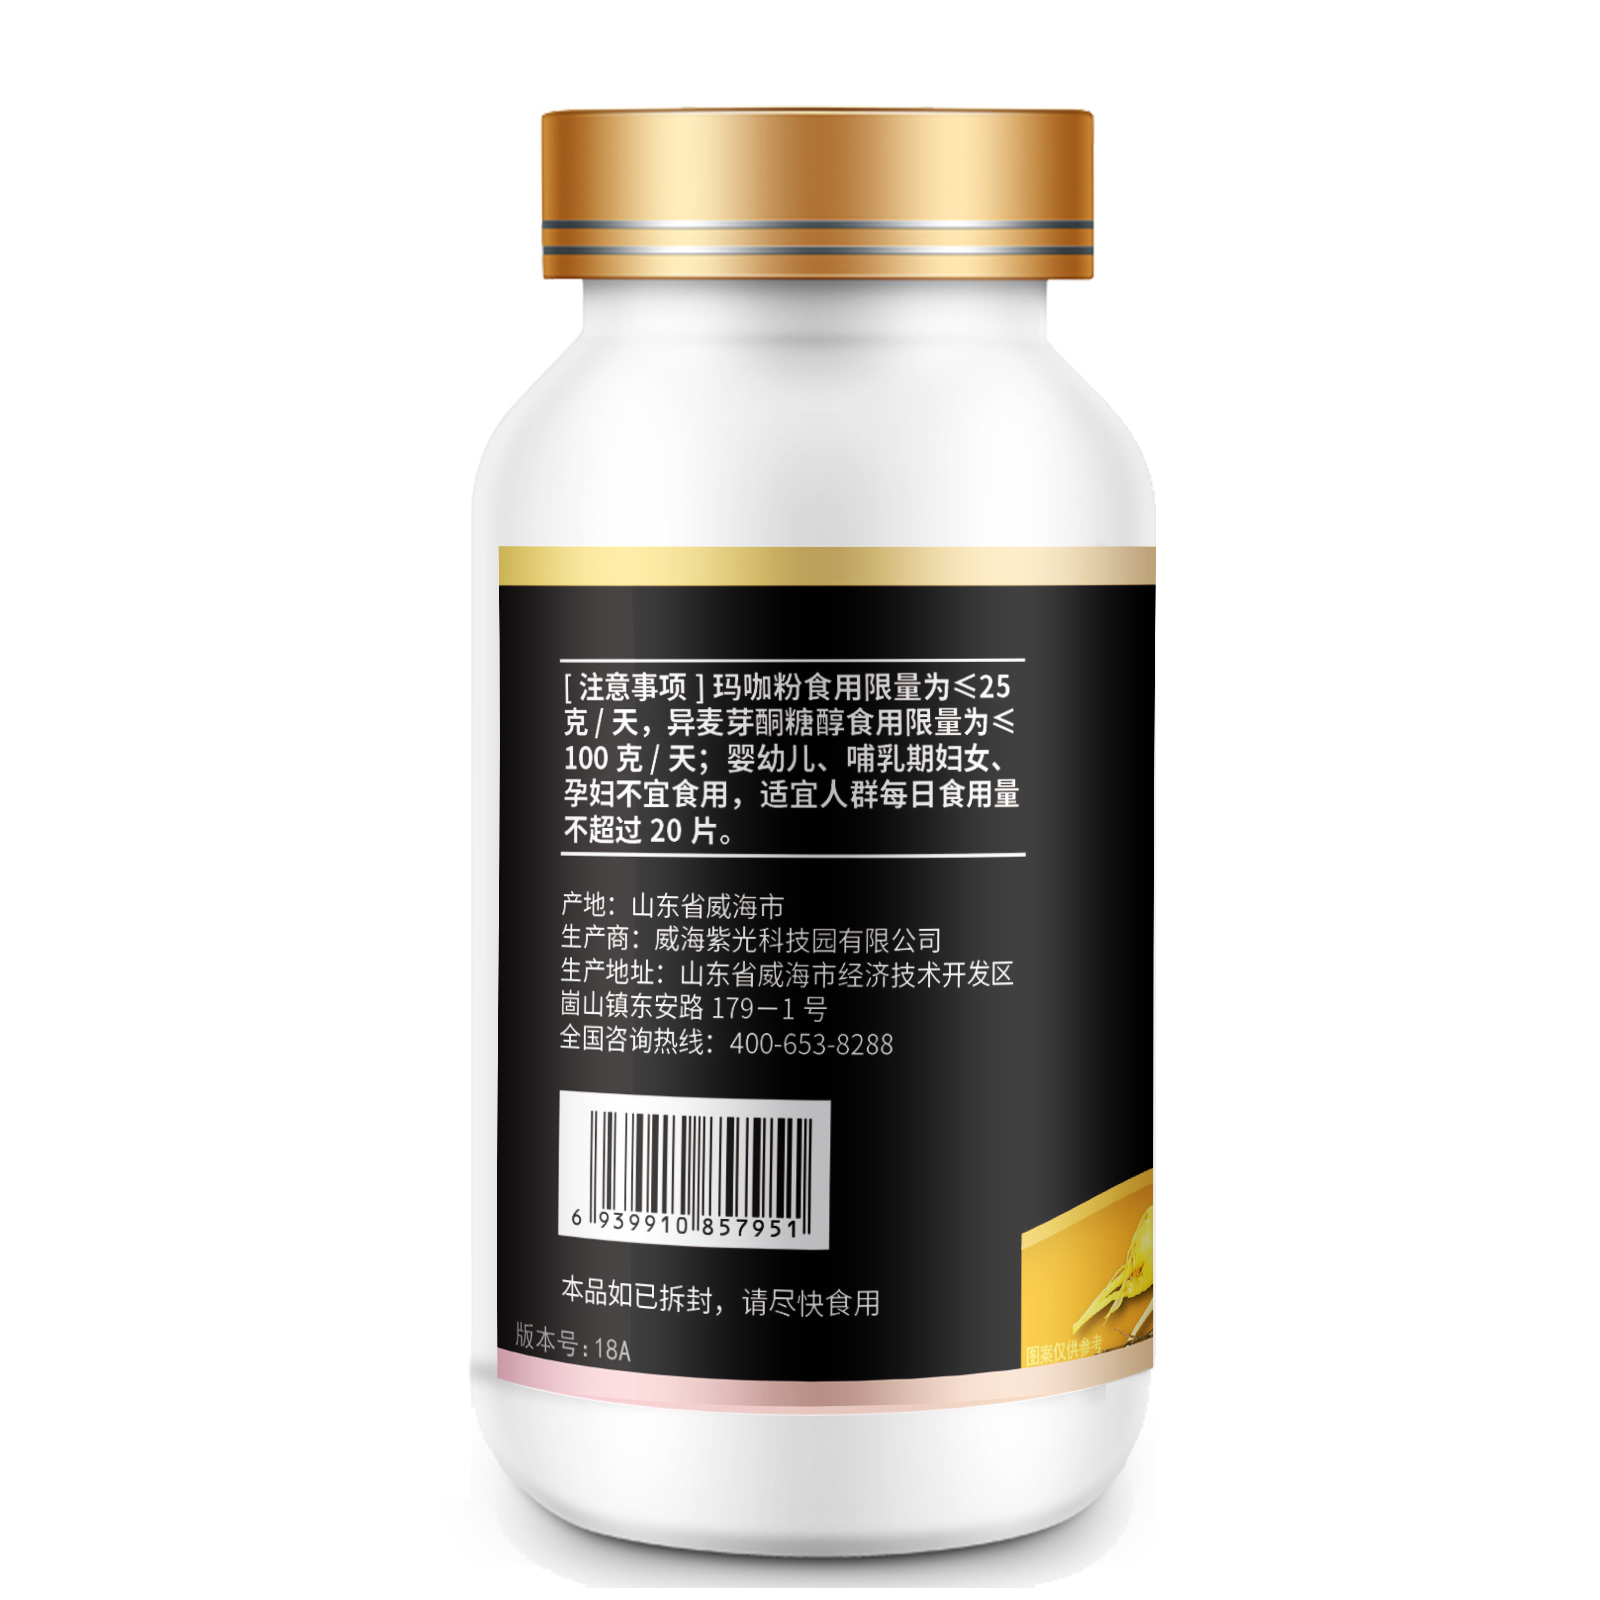 Maca Root Tablet Enhance Fertility and Improve Energy and Stamina Increases Libido Boost Sports Performance and Energy 2